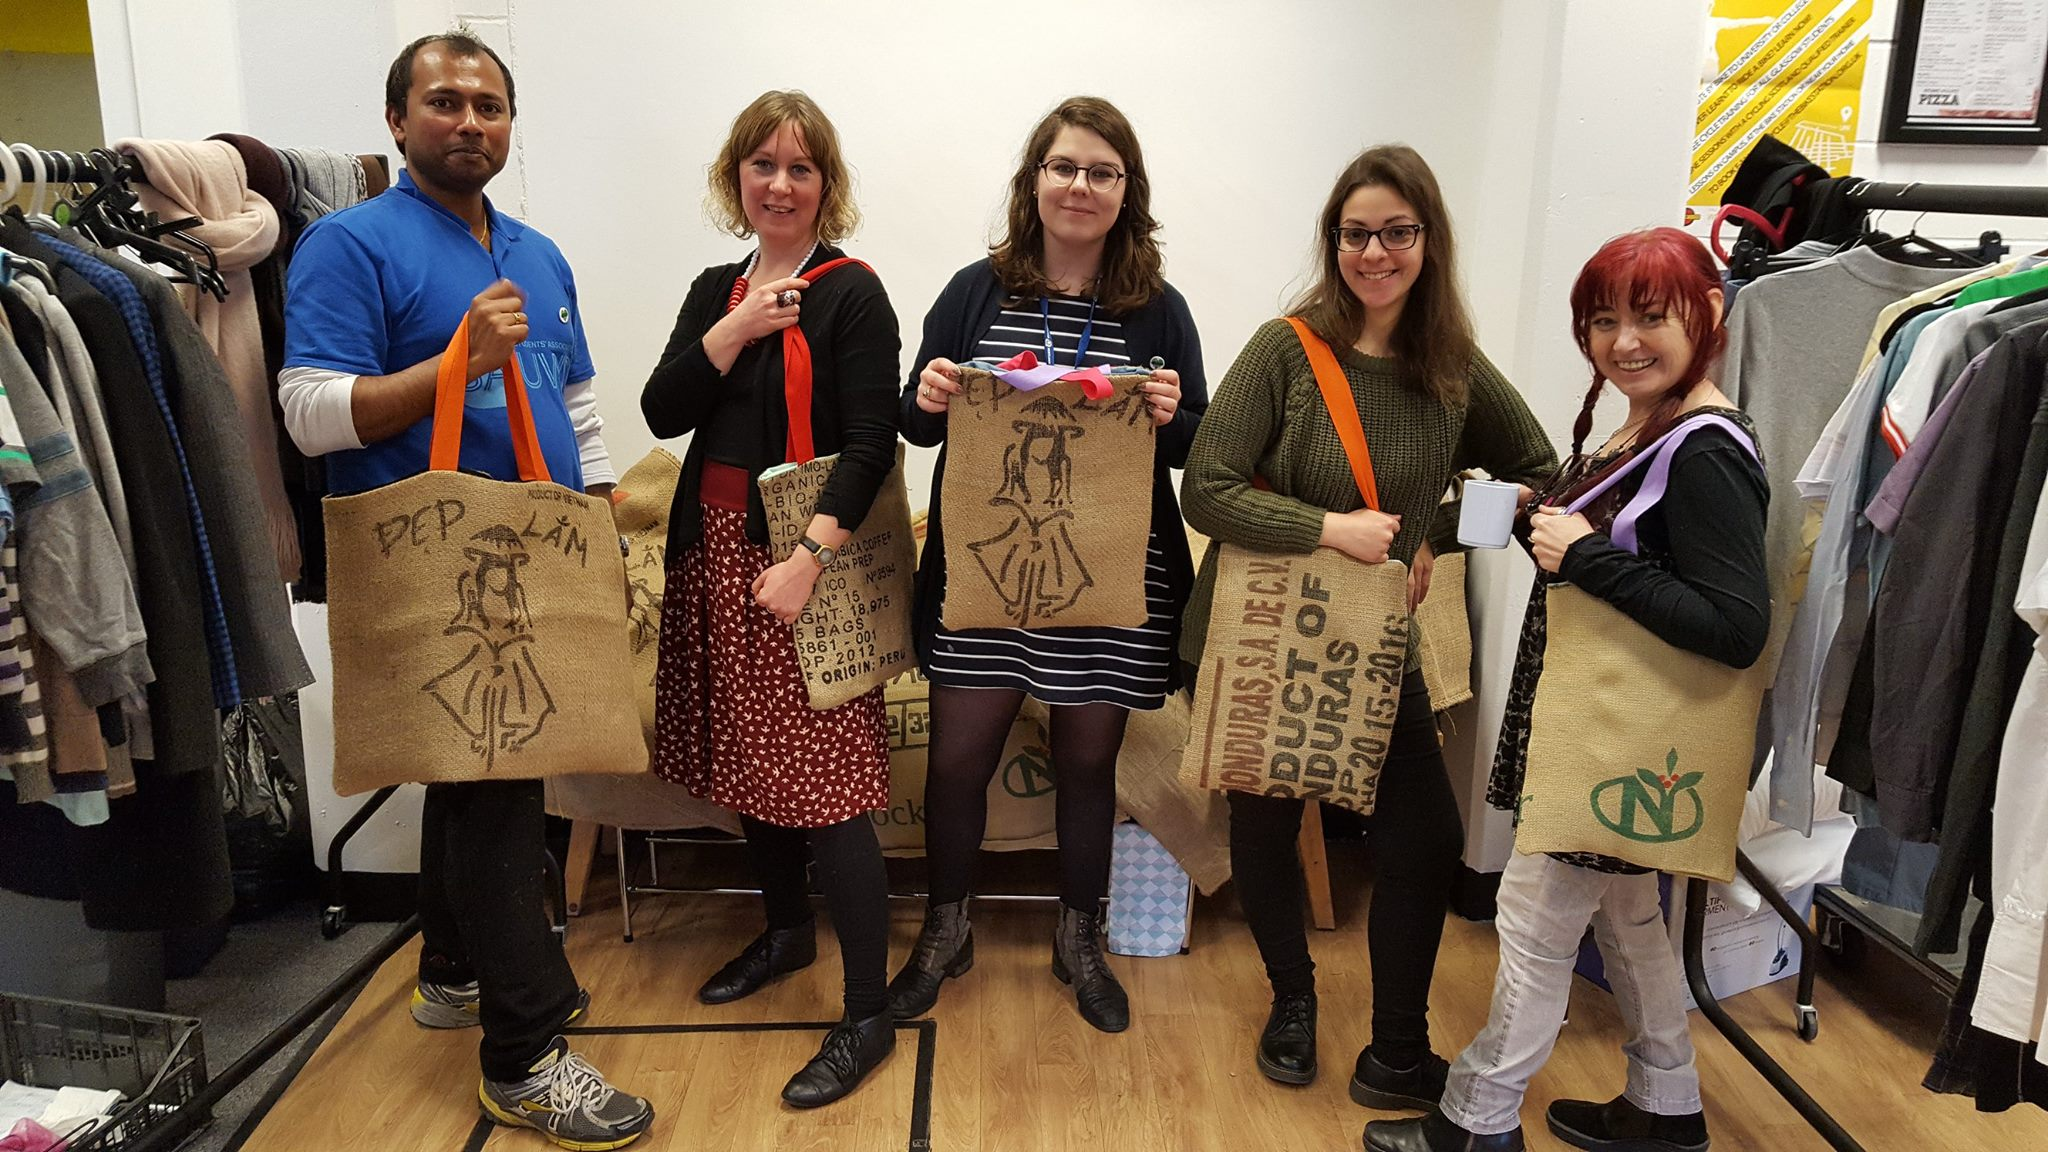 A group of people holding bags